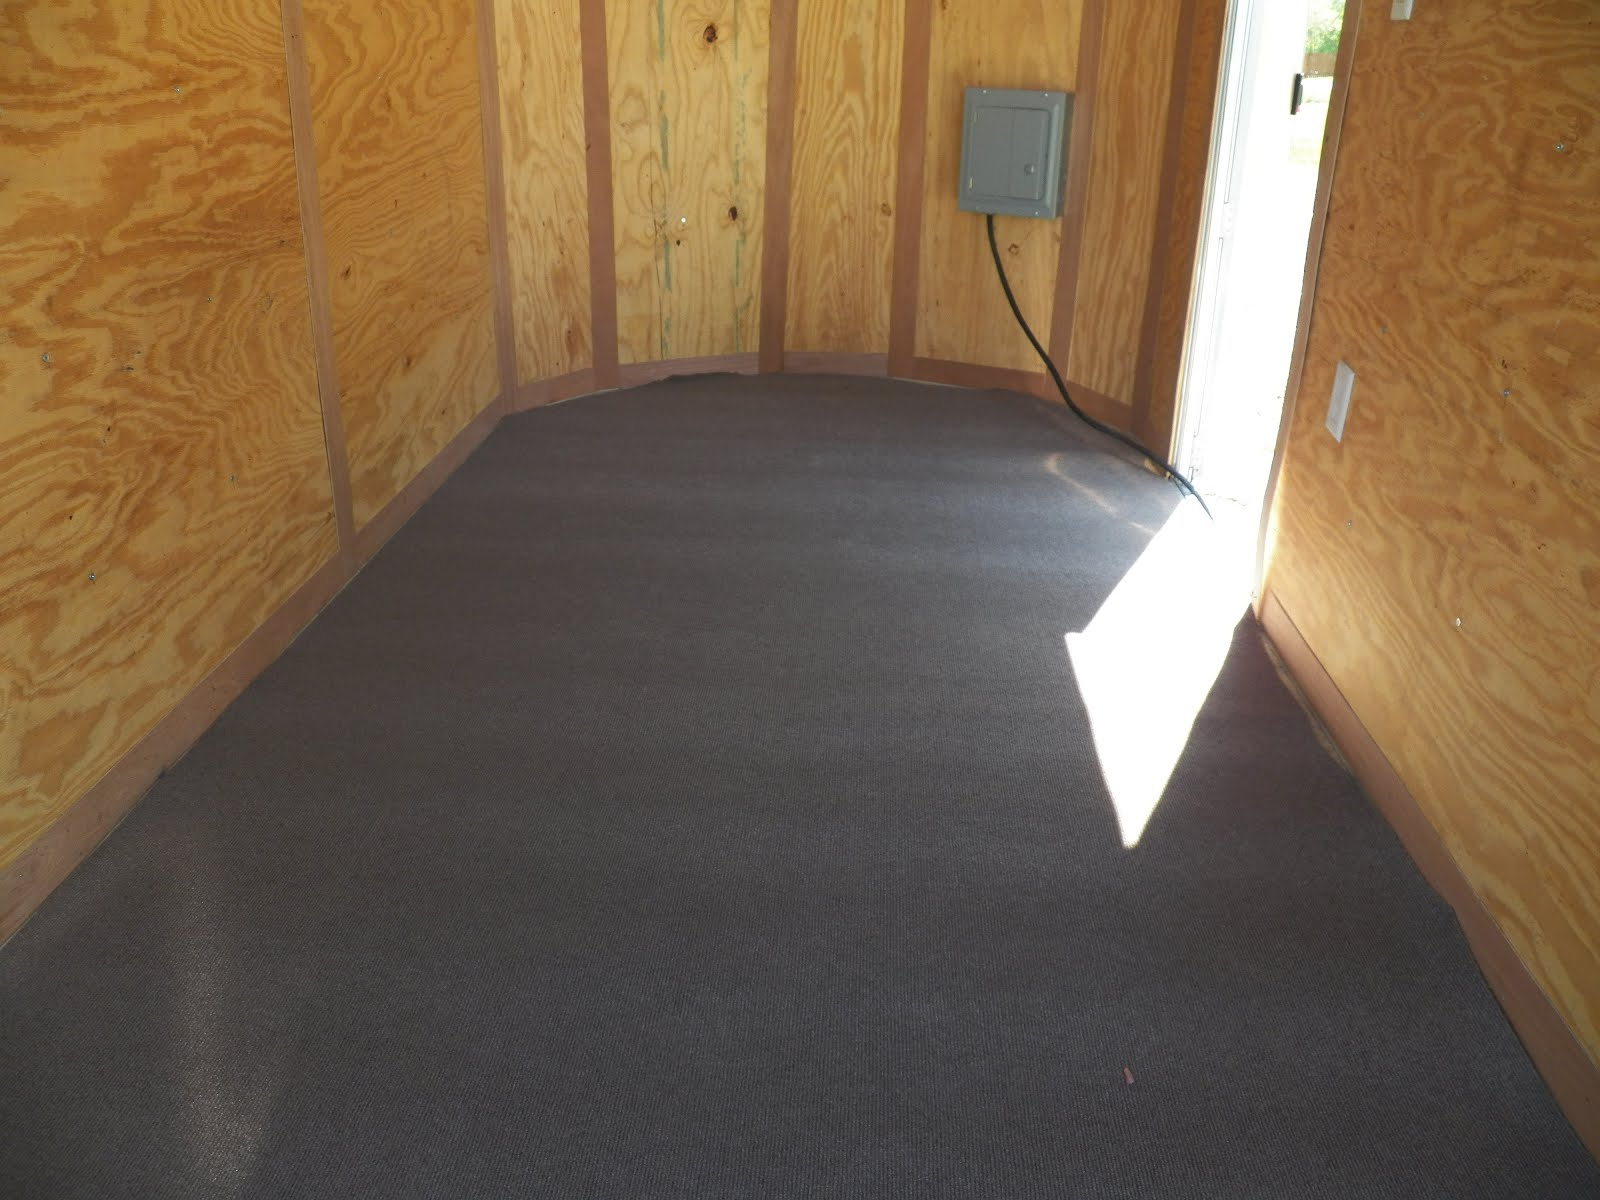 enclosed trailer flooring ideas. One Thing I Never Got Around To With The 1st STEALTH Trailer, Was Doing Something Floor!! Fixed That Issue New Rig Today!! Enclosed Trailer Flooring Ideas